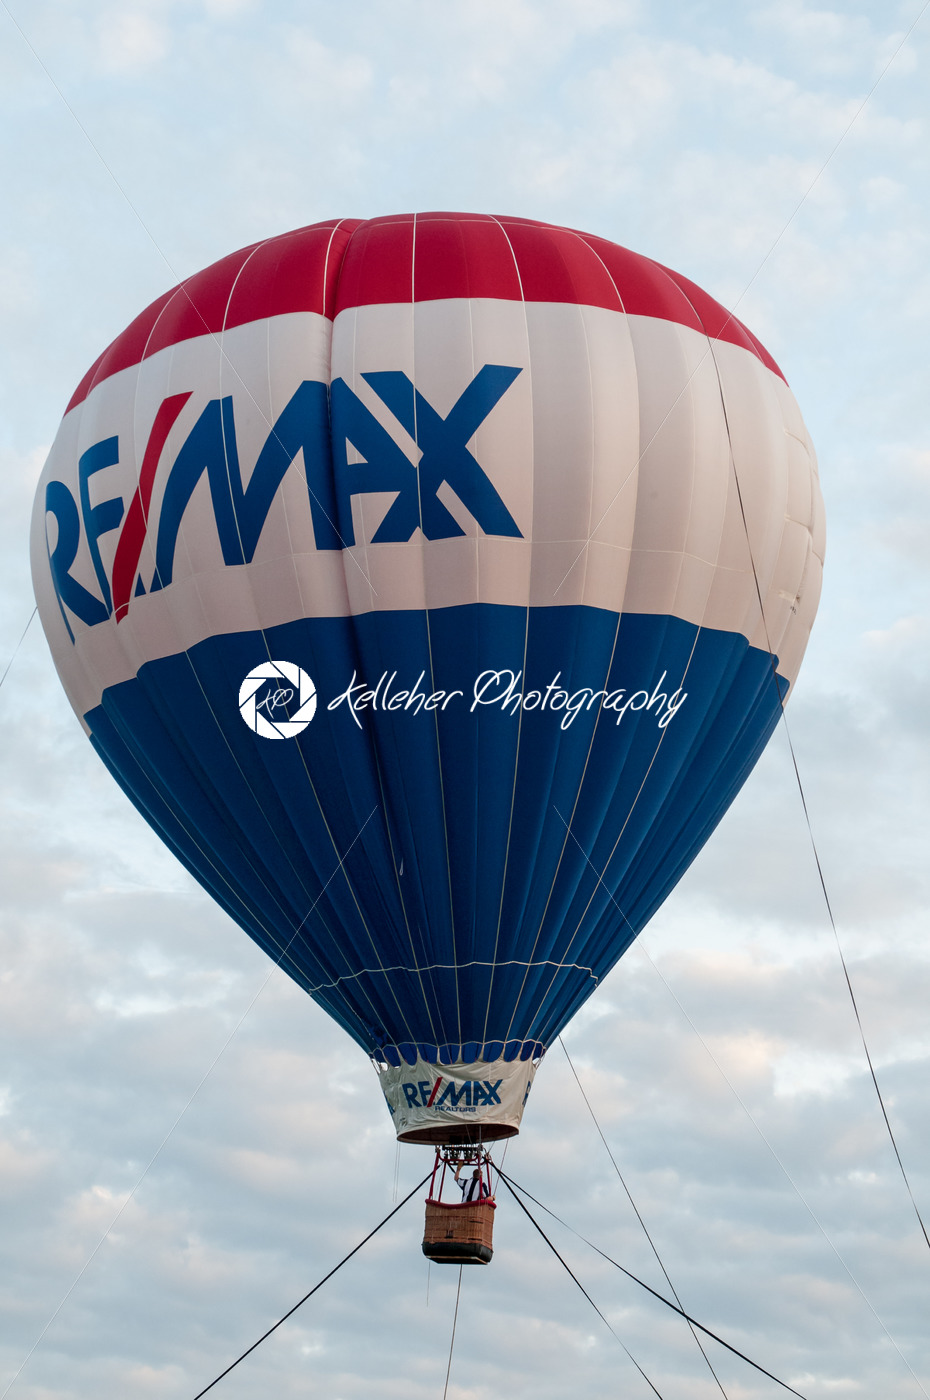 EAST GOSHEN, PA – JUNE 21: The Remax balloon floating at East Goshen Day on June 21, 2014 - Kelleher Photography Store